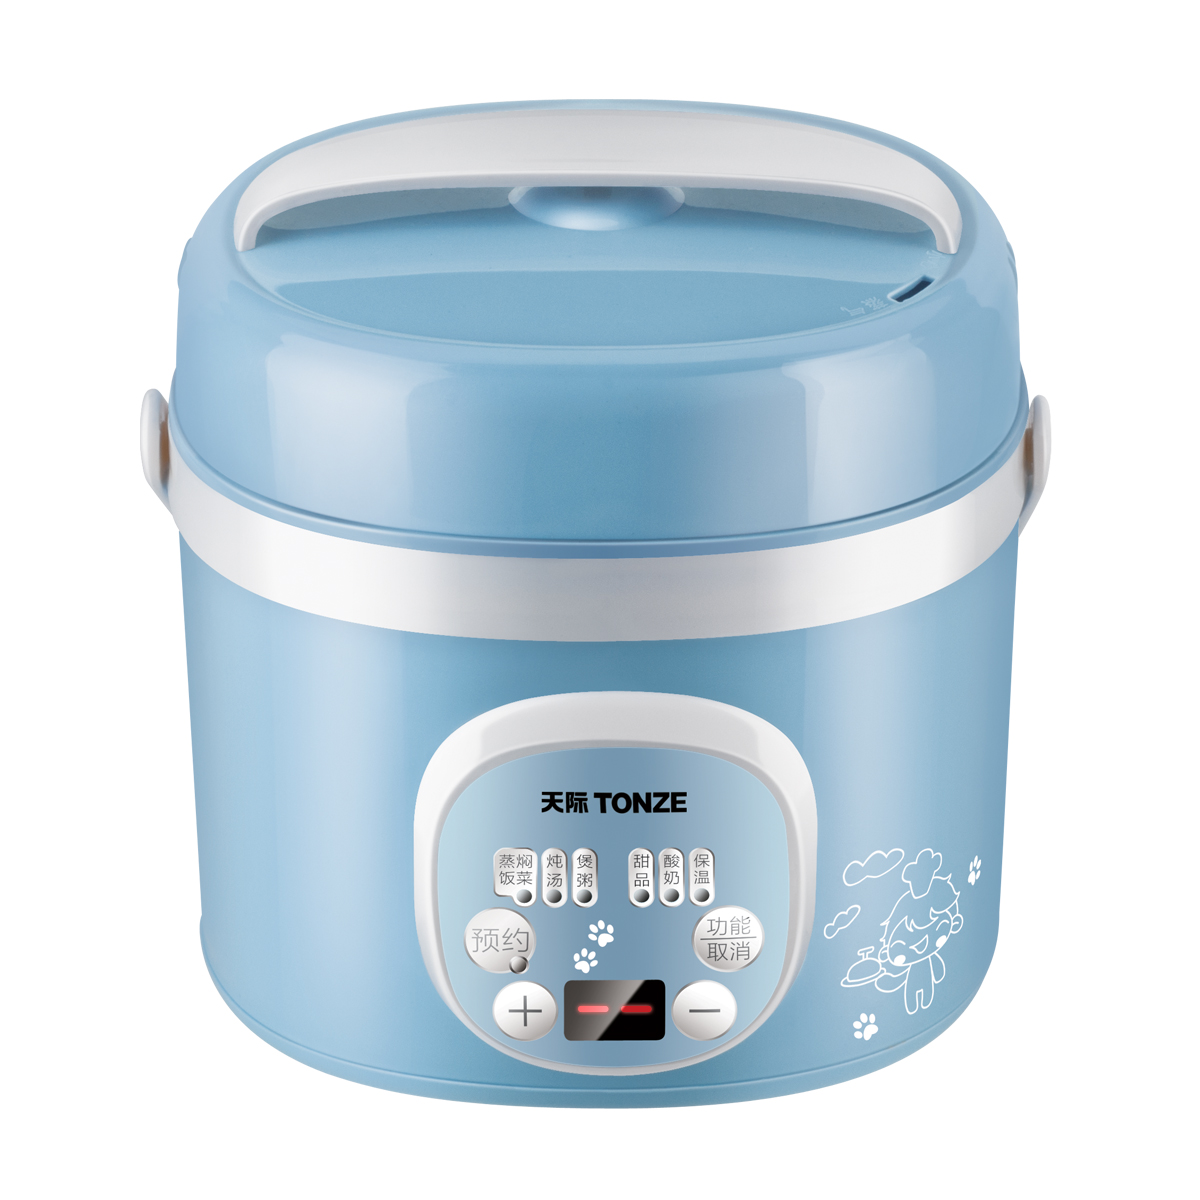 Tonze Electric Thermal Lunch Box Vacuum Preservation Mini Electric Rice Cooker Stainless Steel Double Layer Food Container bear portable mini electric lunch box stainless steel preservation for home and office mini rice cooker box container